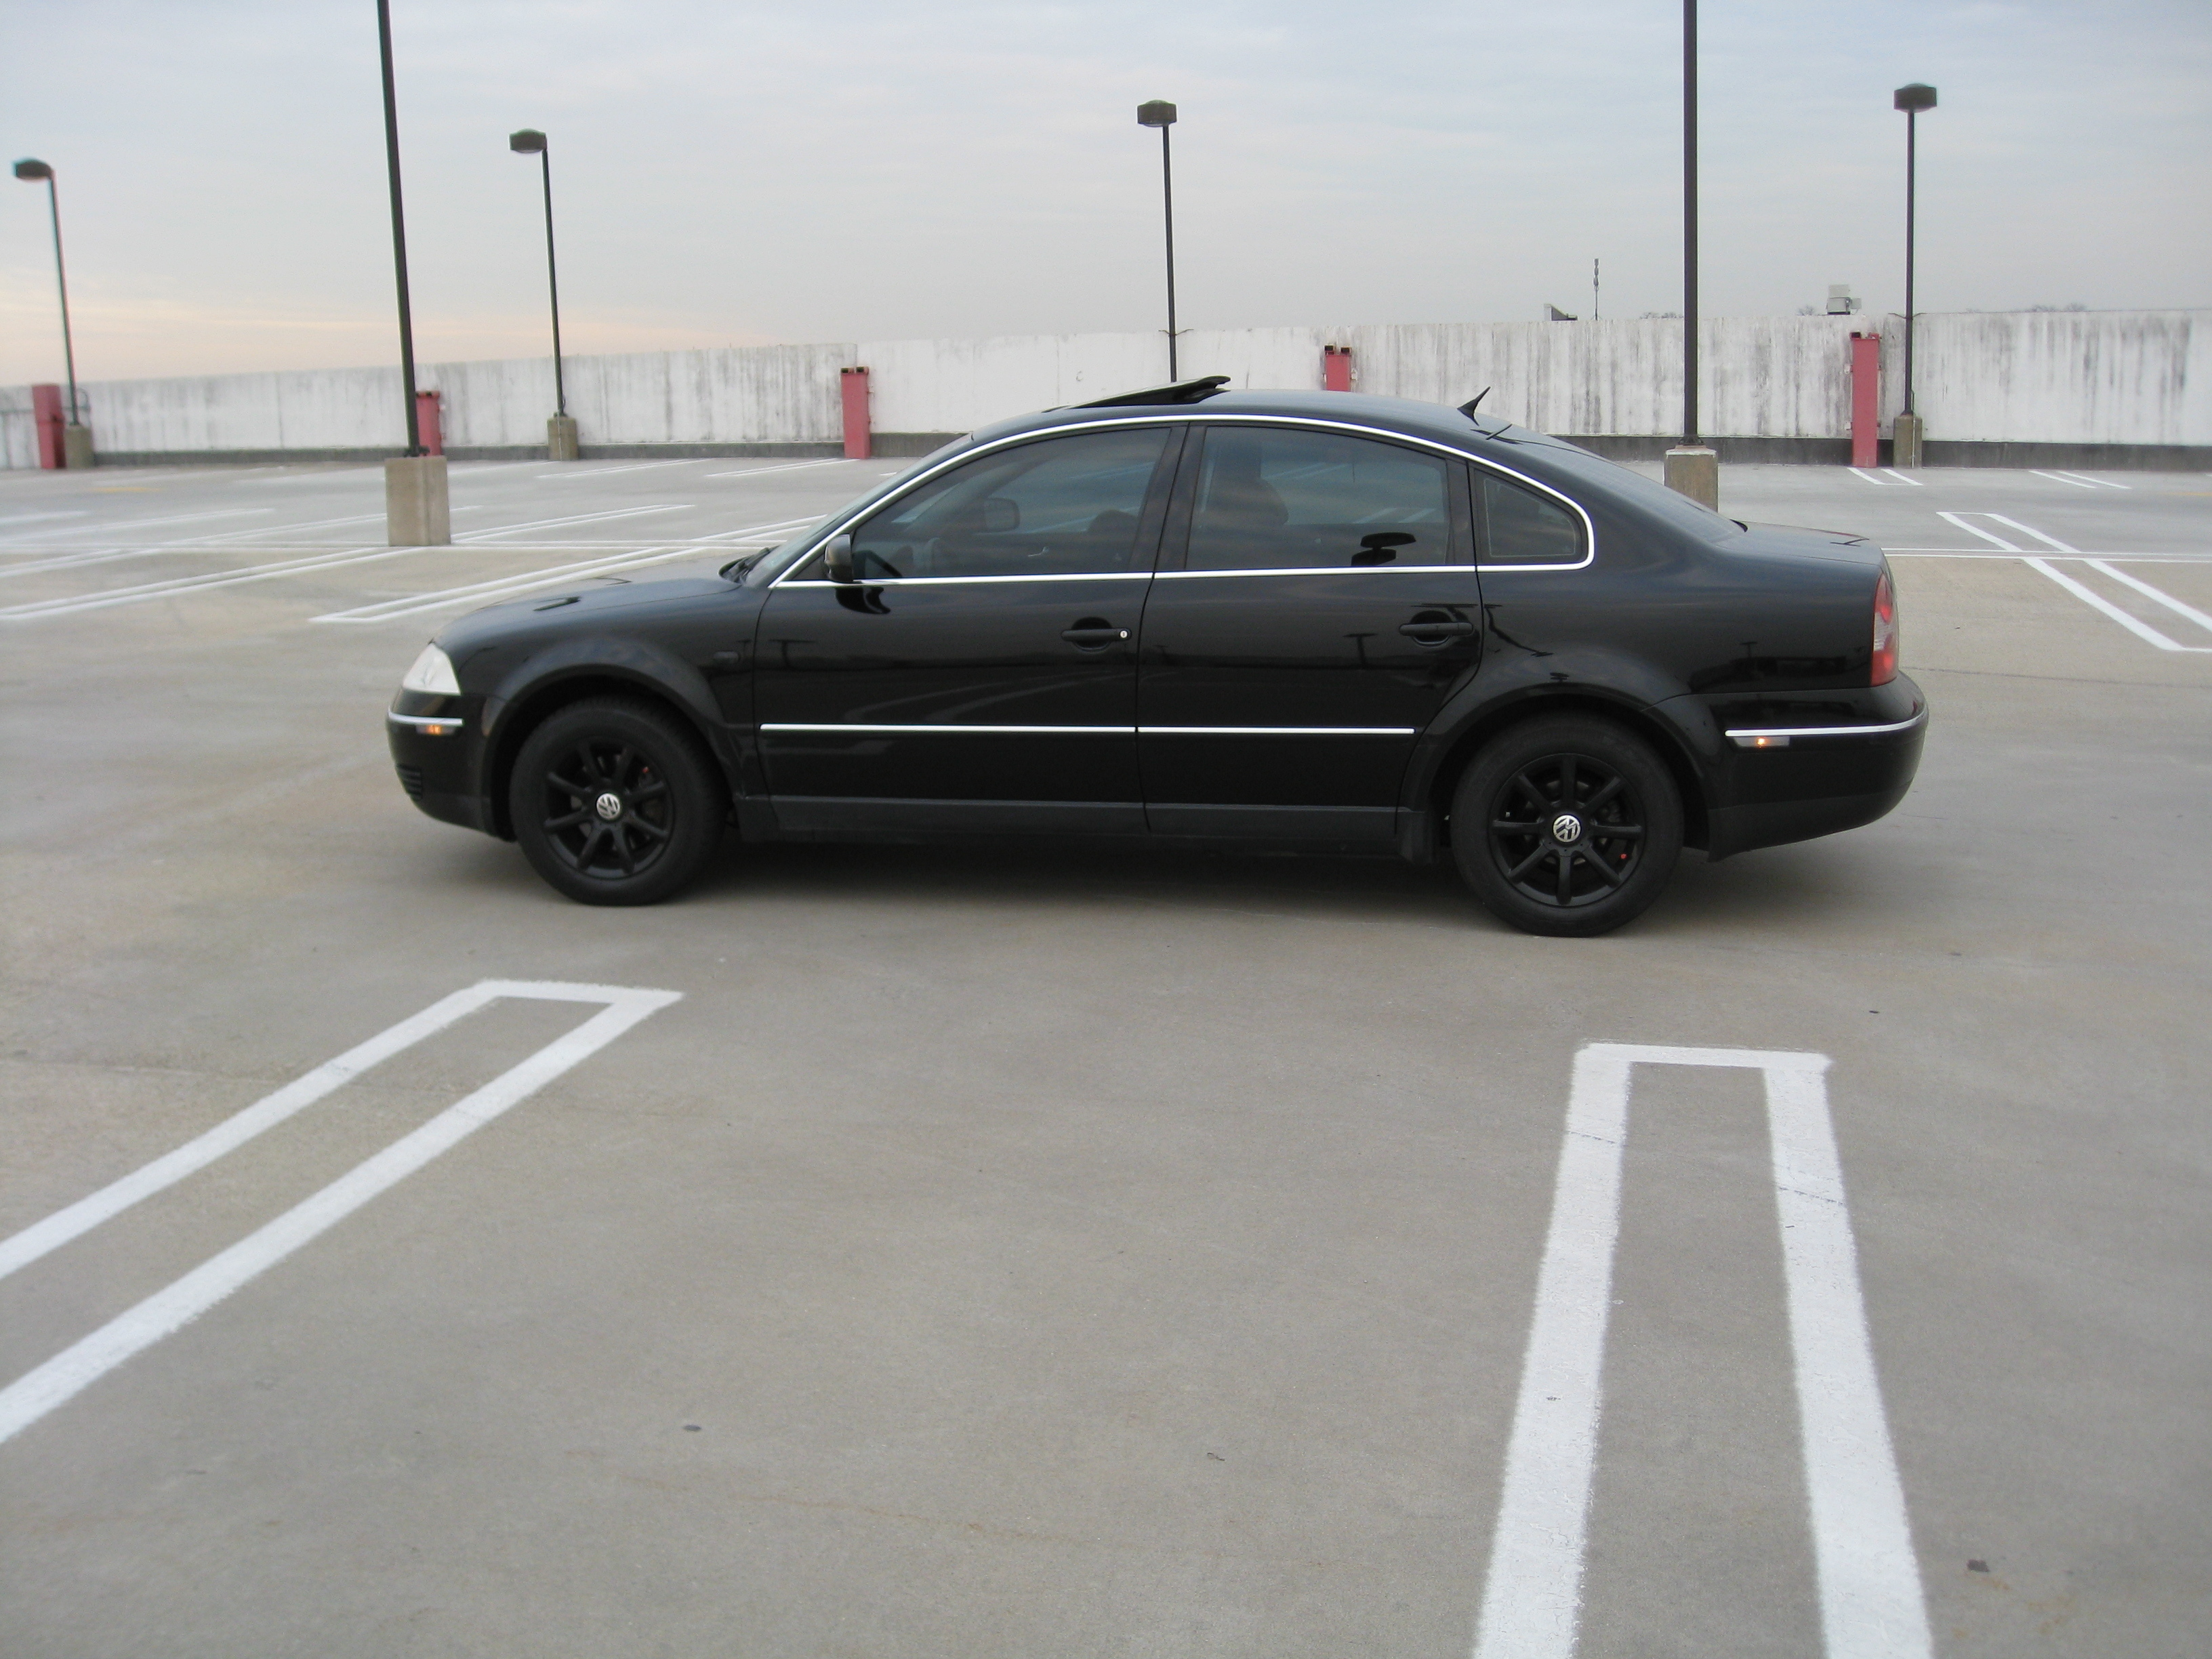 Vf21atr 2004 Volkswagen Passat Specs Photos Modification